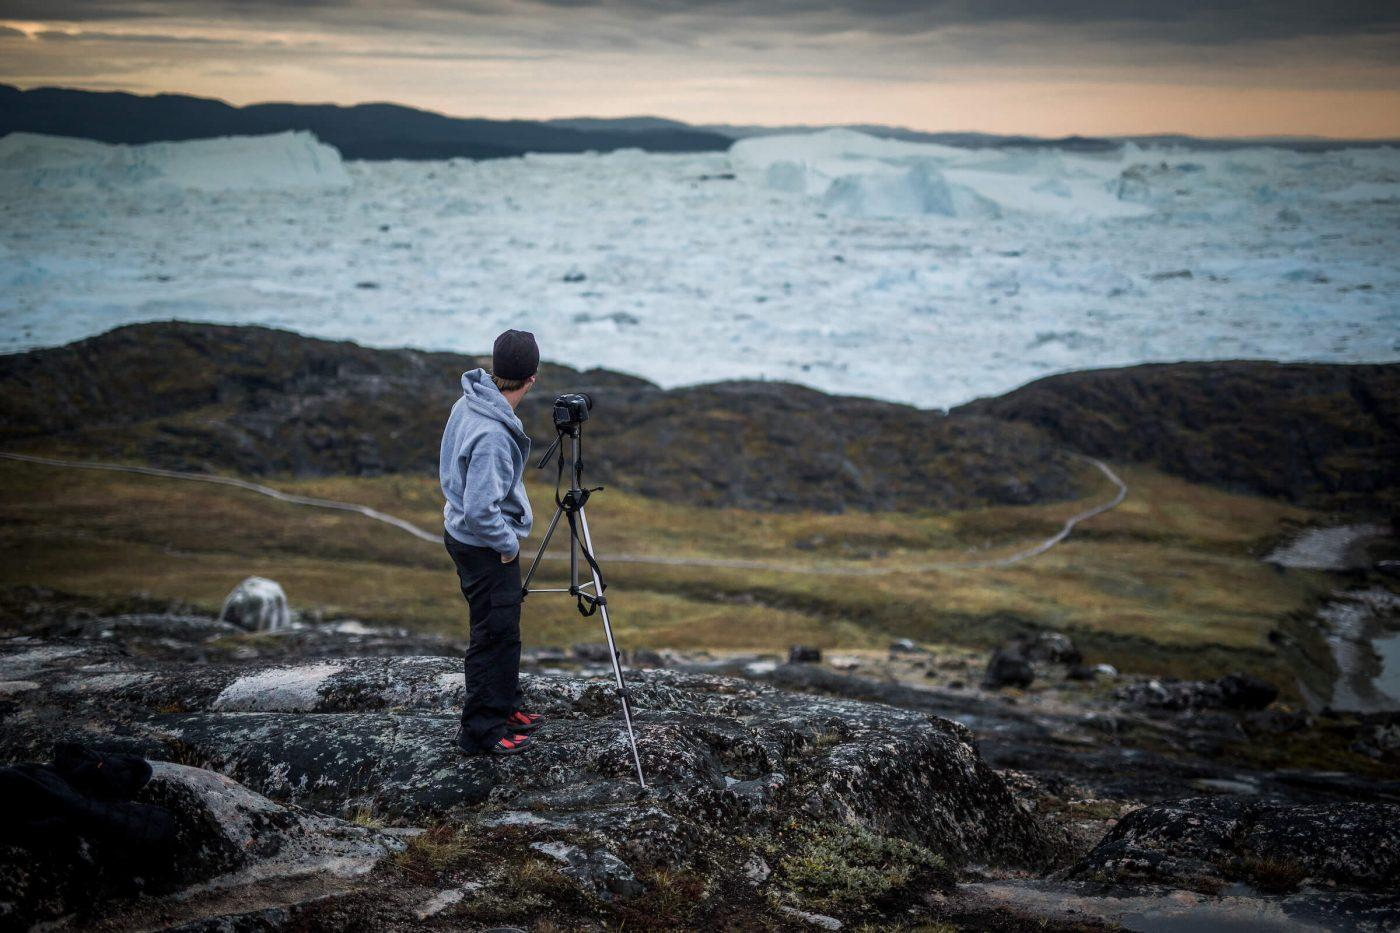 A photographer near the Ilulissat ice fjord in Greenland. By Mads Pihl